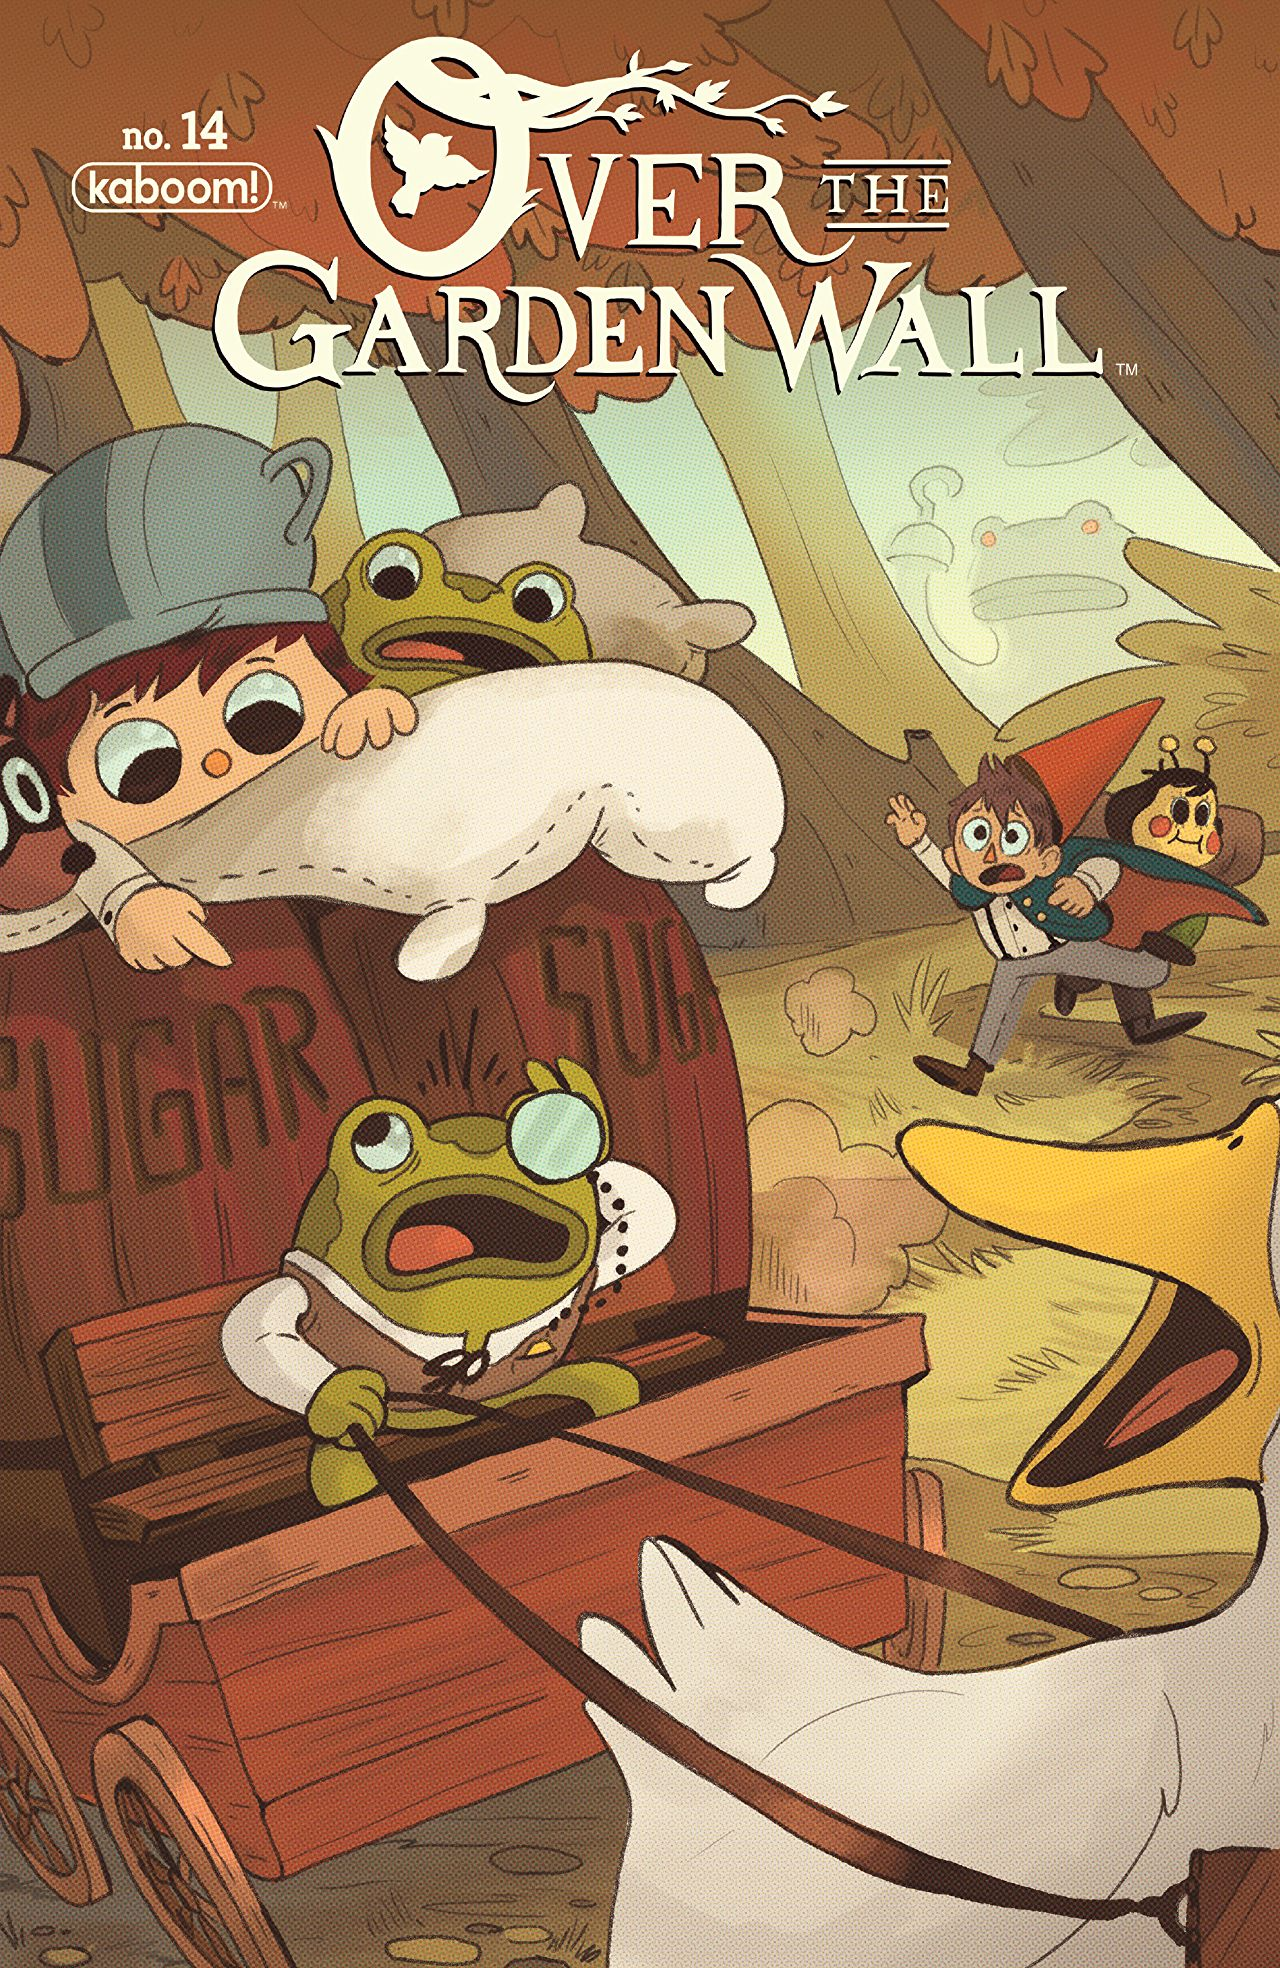 otgw ongoing issue 14jpg - Over The Garden Wall Poster